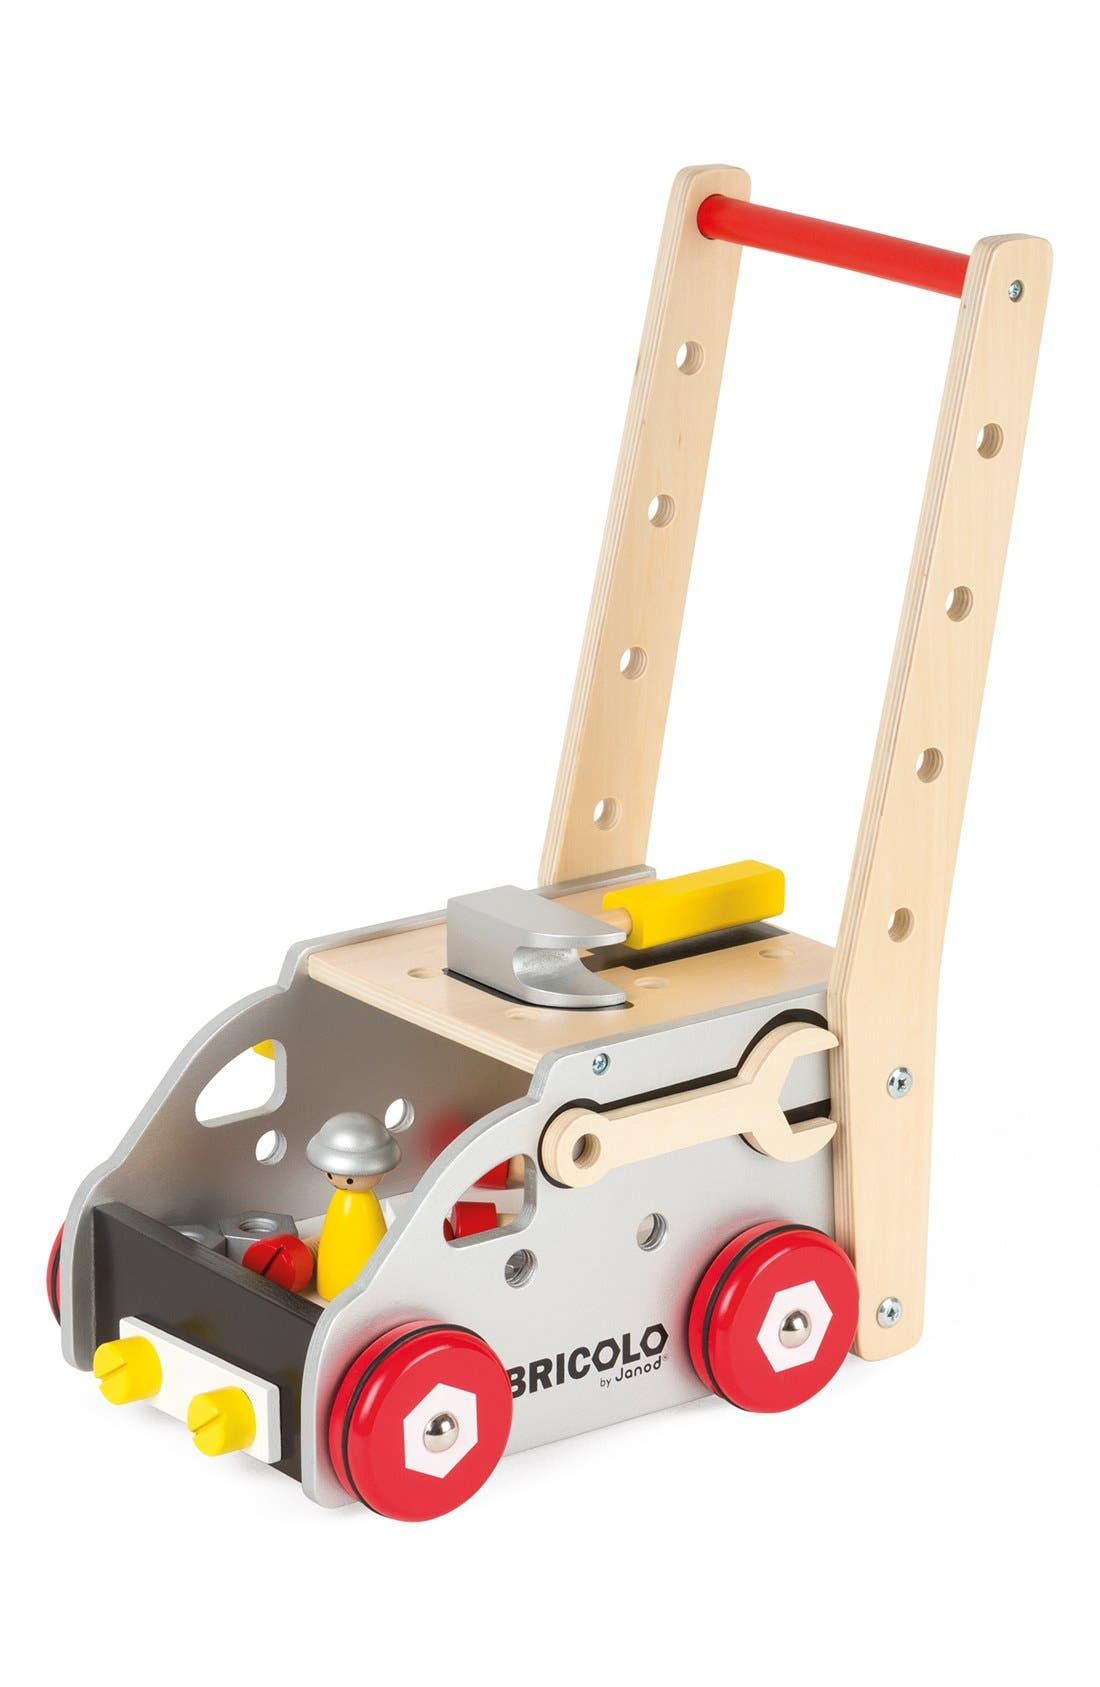 'Bricolo Redmaster Workbench and Trolley' Toy Set,                             Main thumbnail 1, color,                             Multi